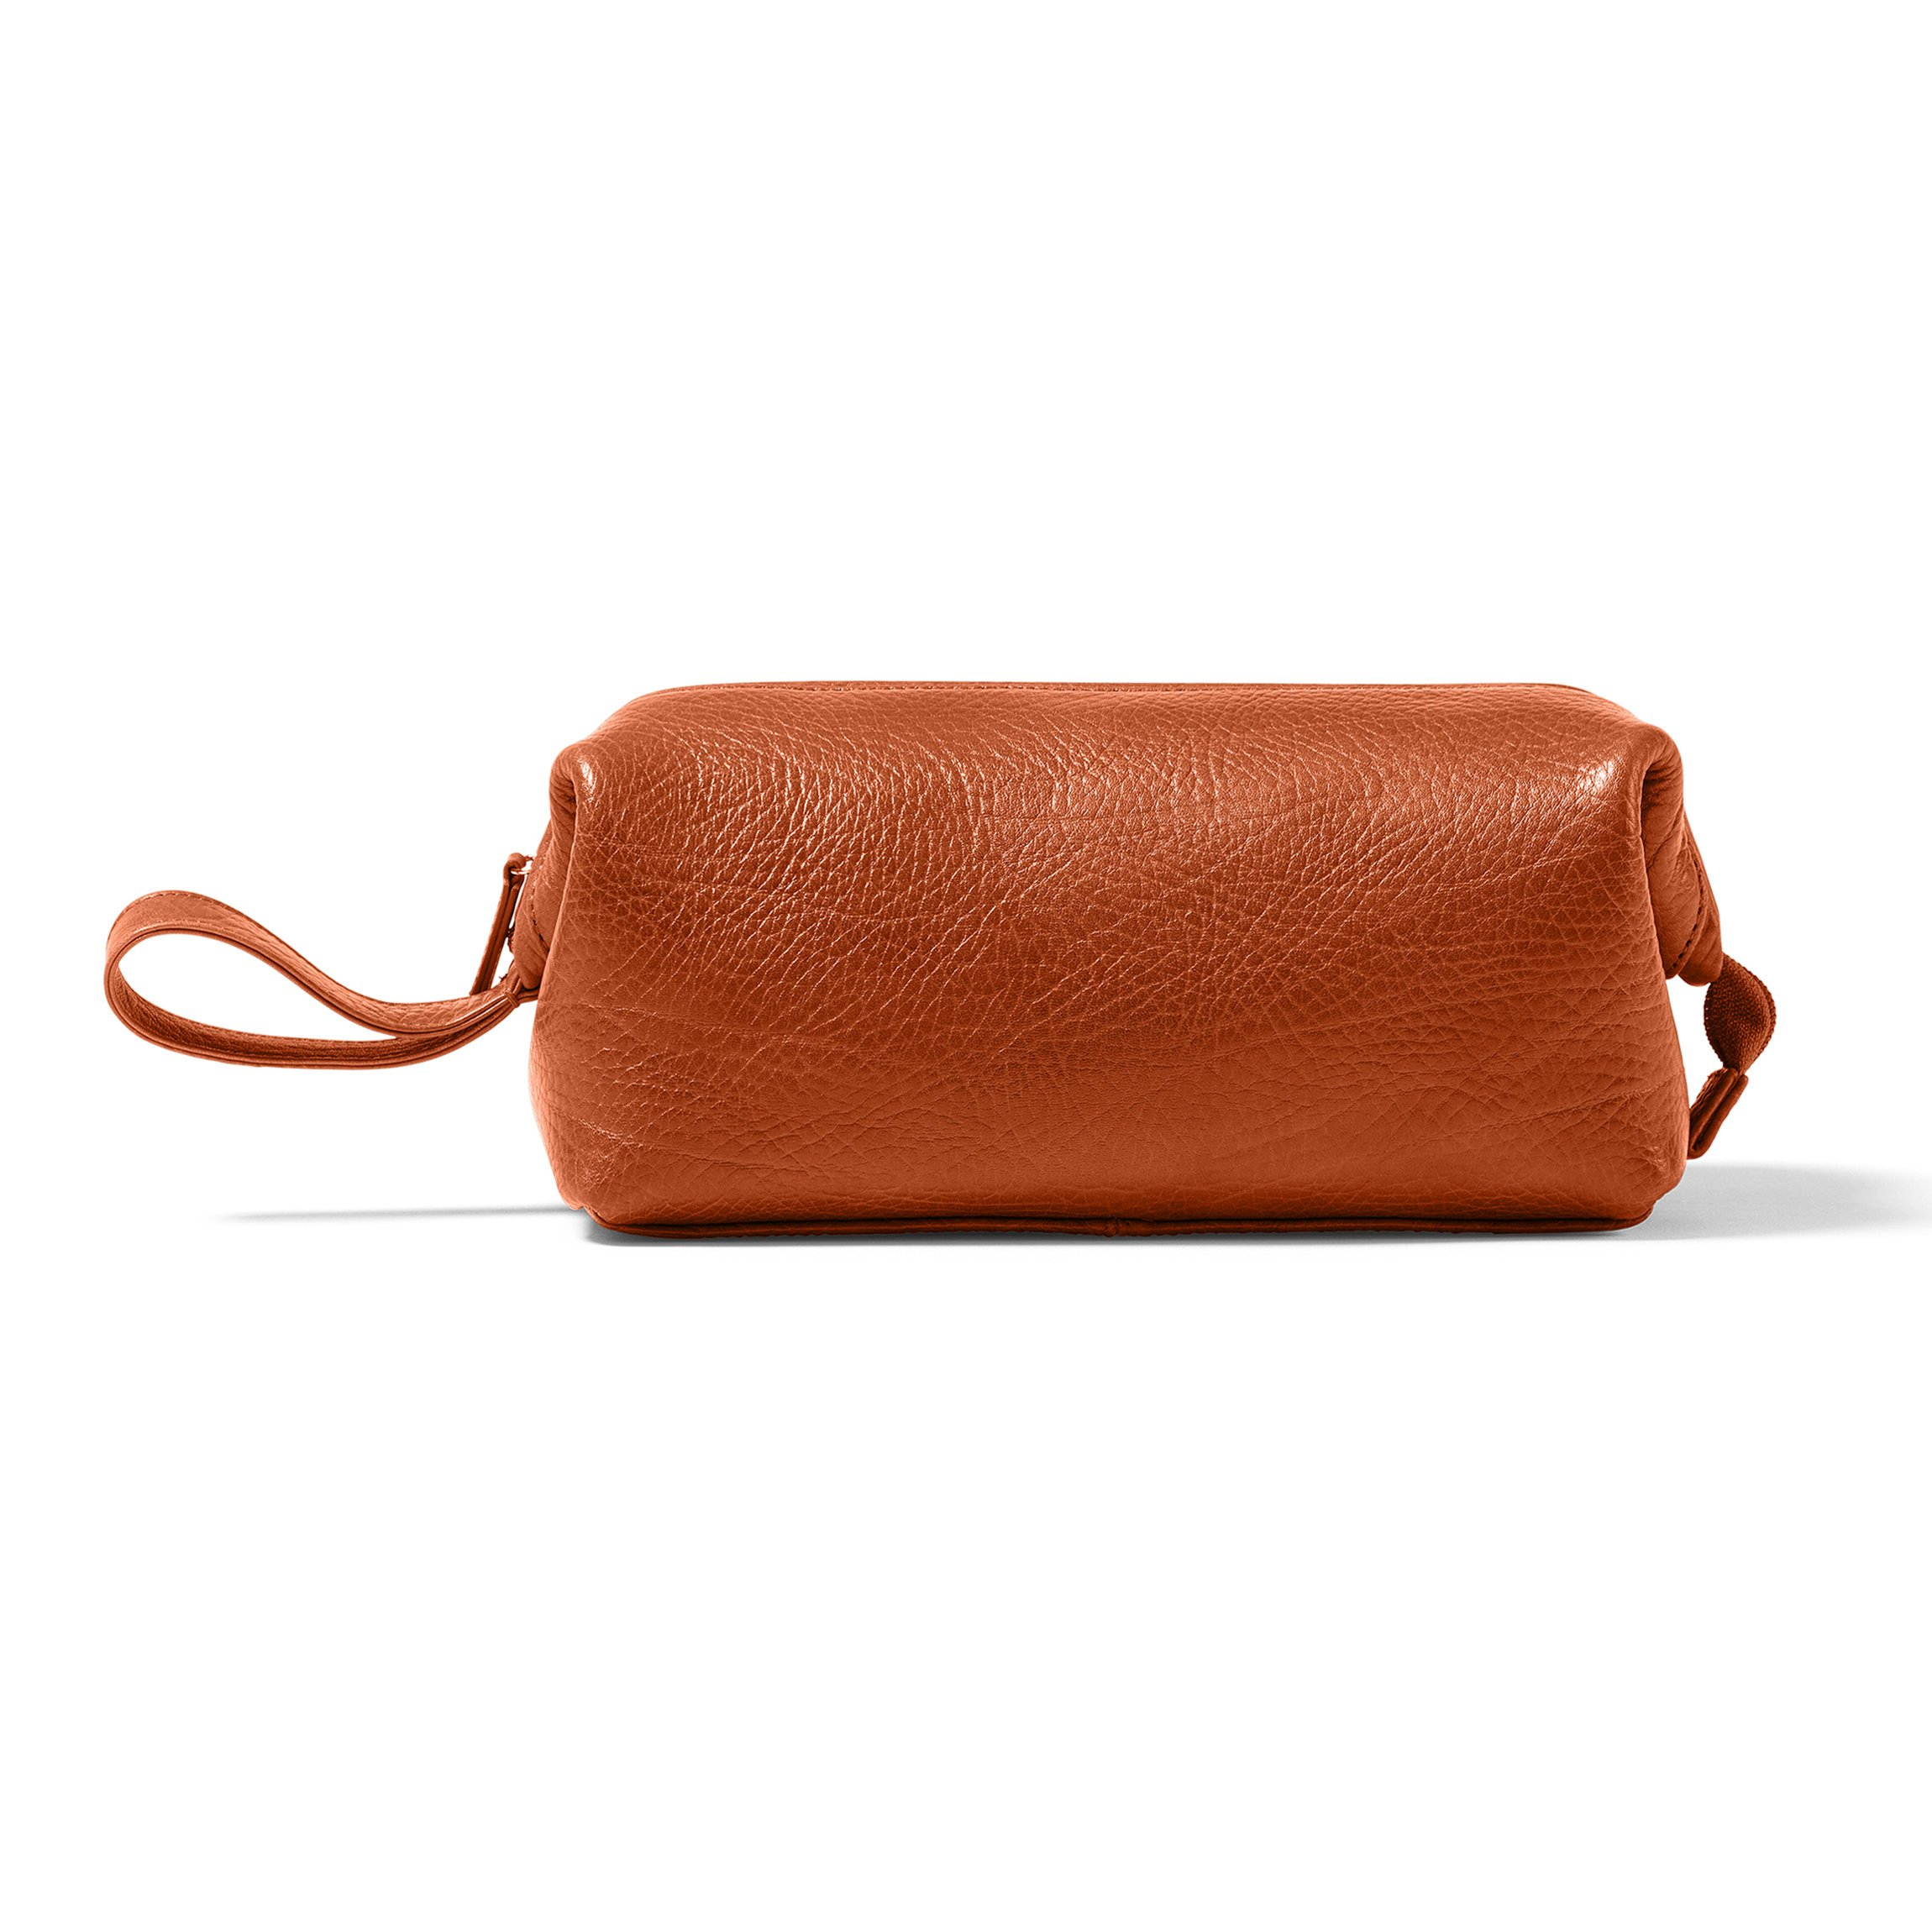 Leatherology Framed Toiletry Bag - Italian Leather - Whiskey (brown)